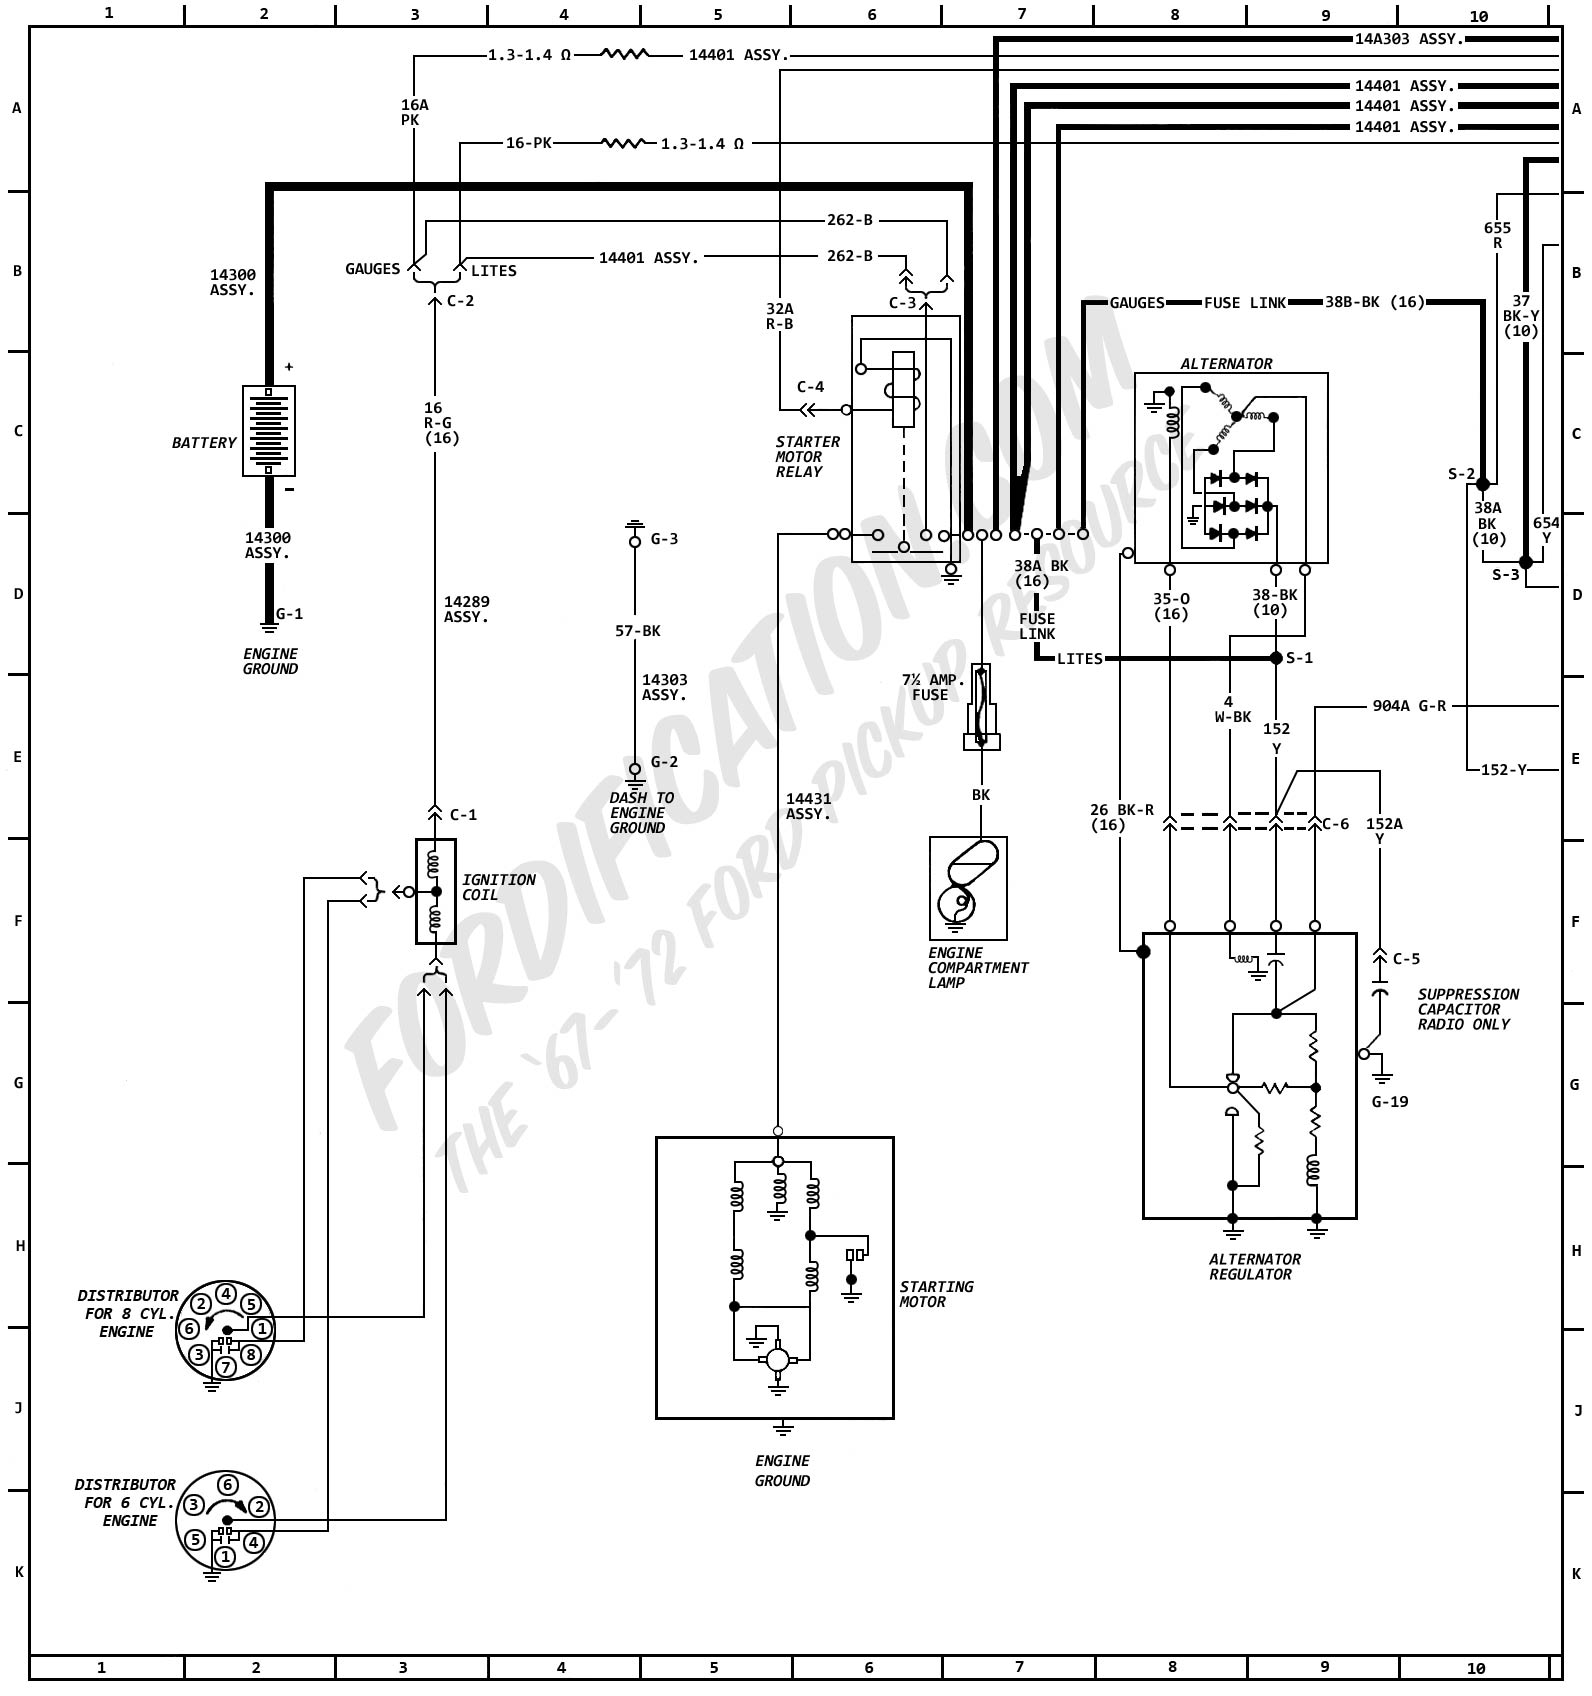 1972 ford truck wiring diagrams fordification com rh fordification com 1972 ford f100 alternator wiring diagram